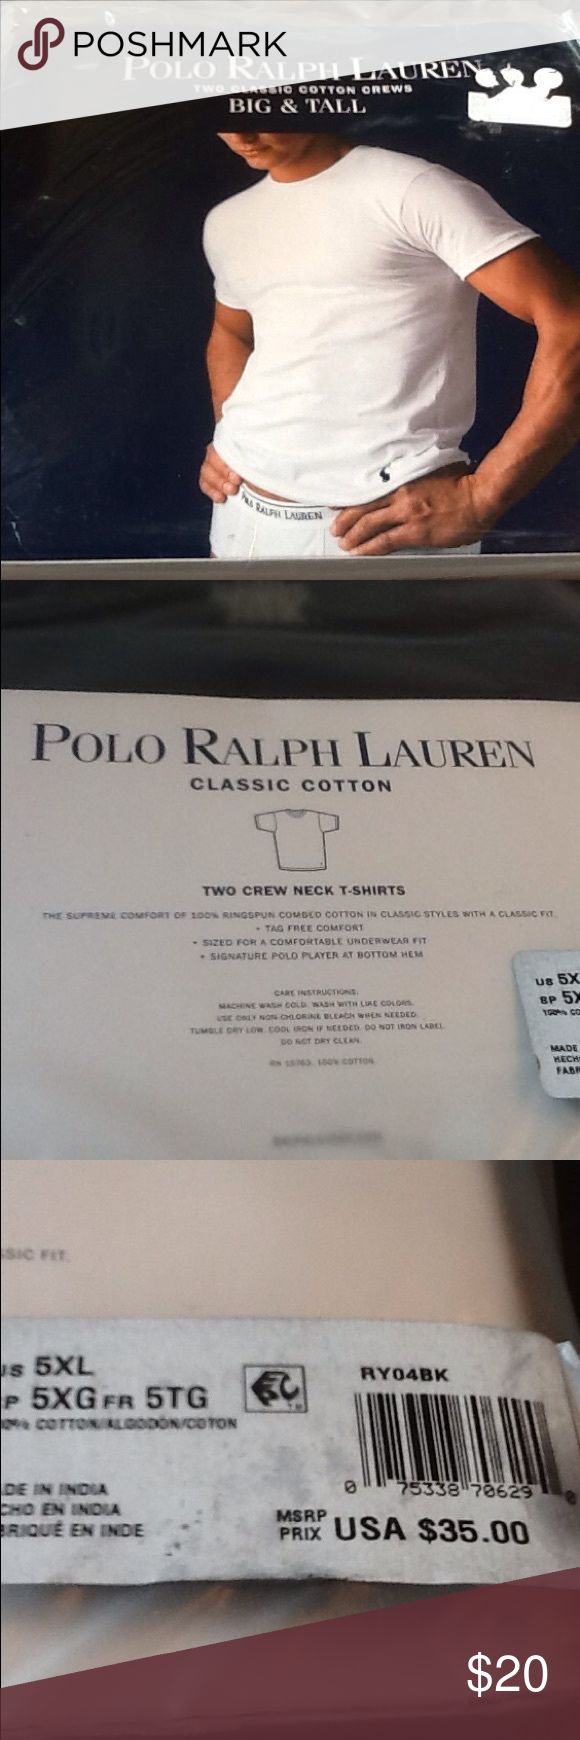 Men's POLO RALPH LAUREN lot of 2 black t shirts Men's 5x black soft cotton TEES shirts, has signature polo player logo on bottom hem of shirt, crew neck, BLACK, tag free comfort, sized for underwear fit, MSRP $35 (this is the only one I have left) FATHERS DAY GiFT, classic COTTON. Big & Tall size. polo ralph lauren Underwear & Socks Undershirts